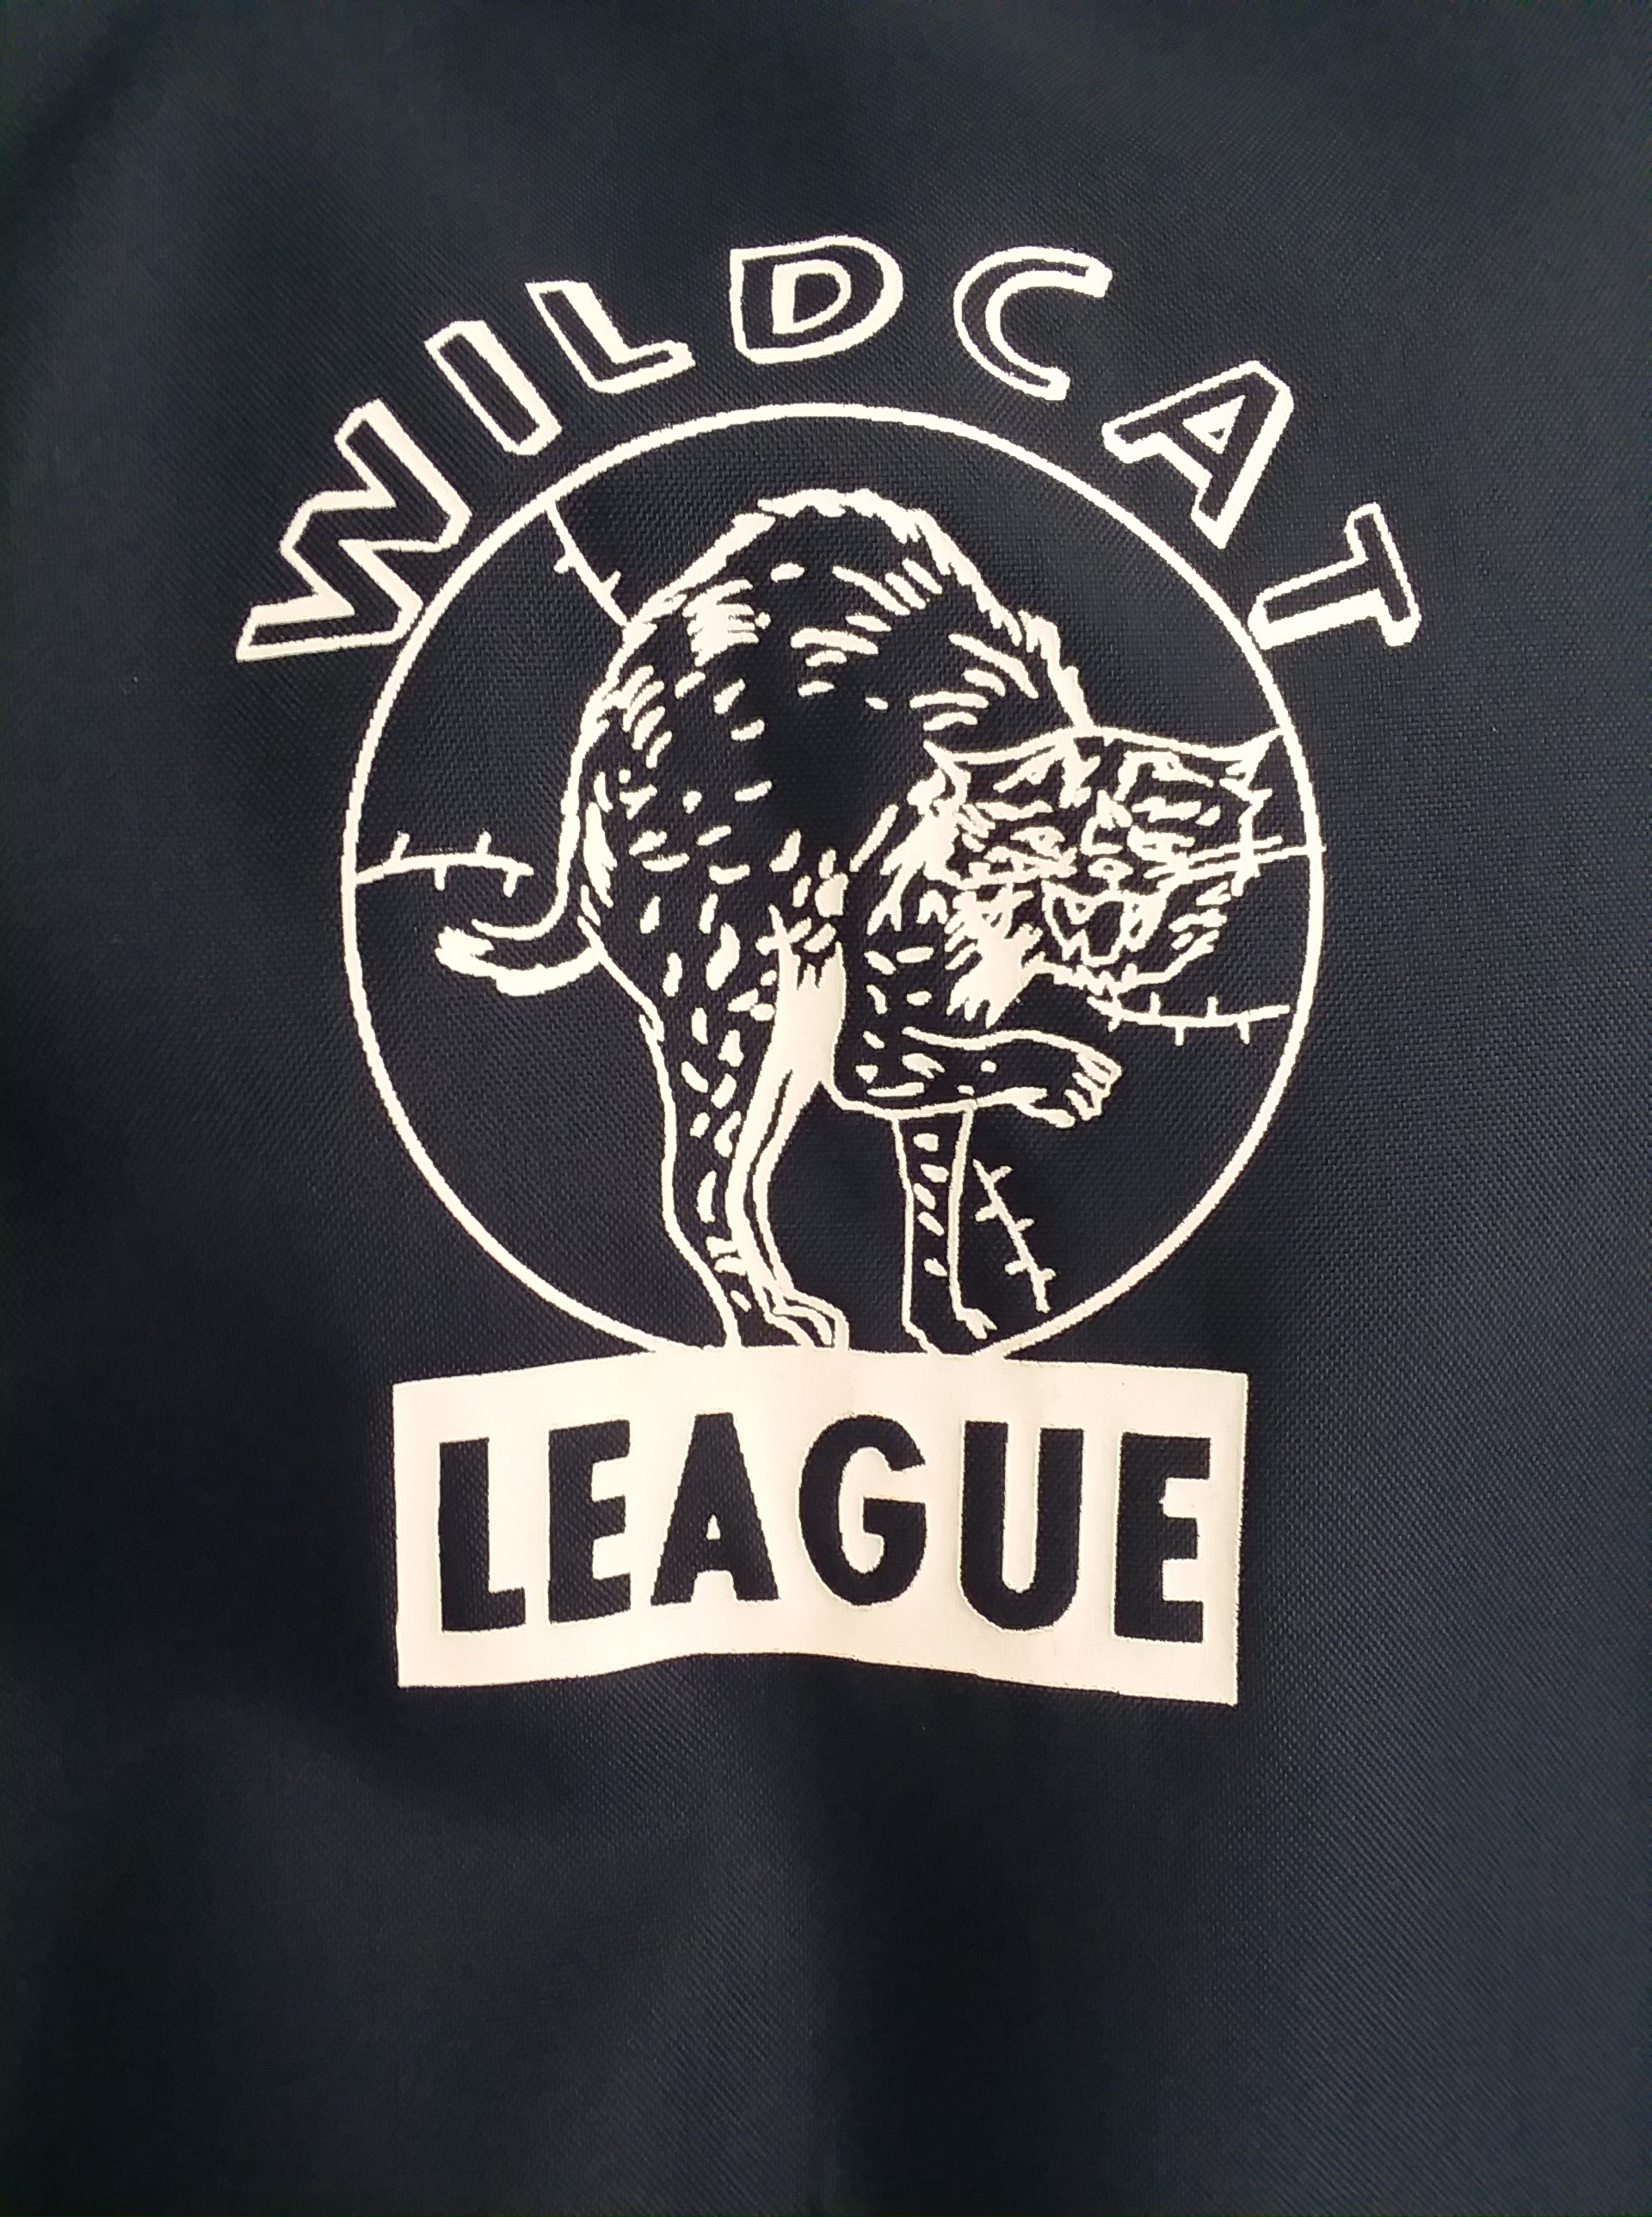 WILDCATBASEBALLLEAGUE